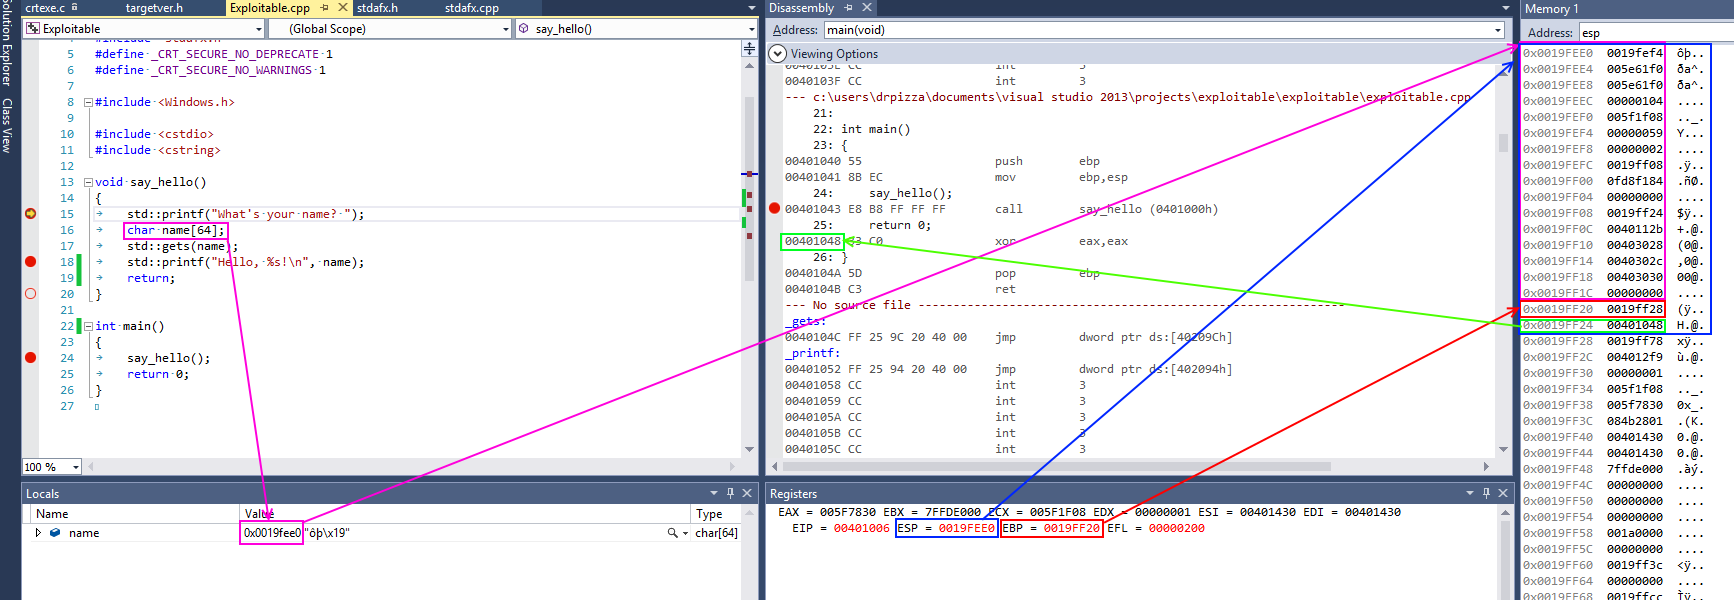 This screenshot from Visual Studio shows some of this in action for a simple x86 program. On x86 processors, the register named <code>esp</code> contains the address of the top stack, in this case <code>0x0019fee0</code>, highlighted in blue (on x86, the stack actually grows downwards, toward memory address <code>0</code>, but it's still called the top of the stack anyway). This function only has one stack variable, <code>name</code>, highlighted in pink. It's a fixed size 32-byte buffer. Because it's the only variable, its address is also <code>0x0019fee0</code>, the same as the top of the stack.</p> <p>x86 also has a register called <code>ebp</code>, highlighted in red, that's (normally) dedicated to storing the location of the frame pointer. The frame pointer is placed immediately after the stack variables. Right after the frame pointer is the return address, highlighted in green. The return address references a code fragment with address <code>0x00401048</code>. This instruction comes immediately after a <code>call</code> instruction, making clear the way the return address is used to resume execution from where the calling function left off.